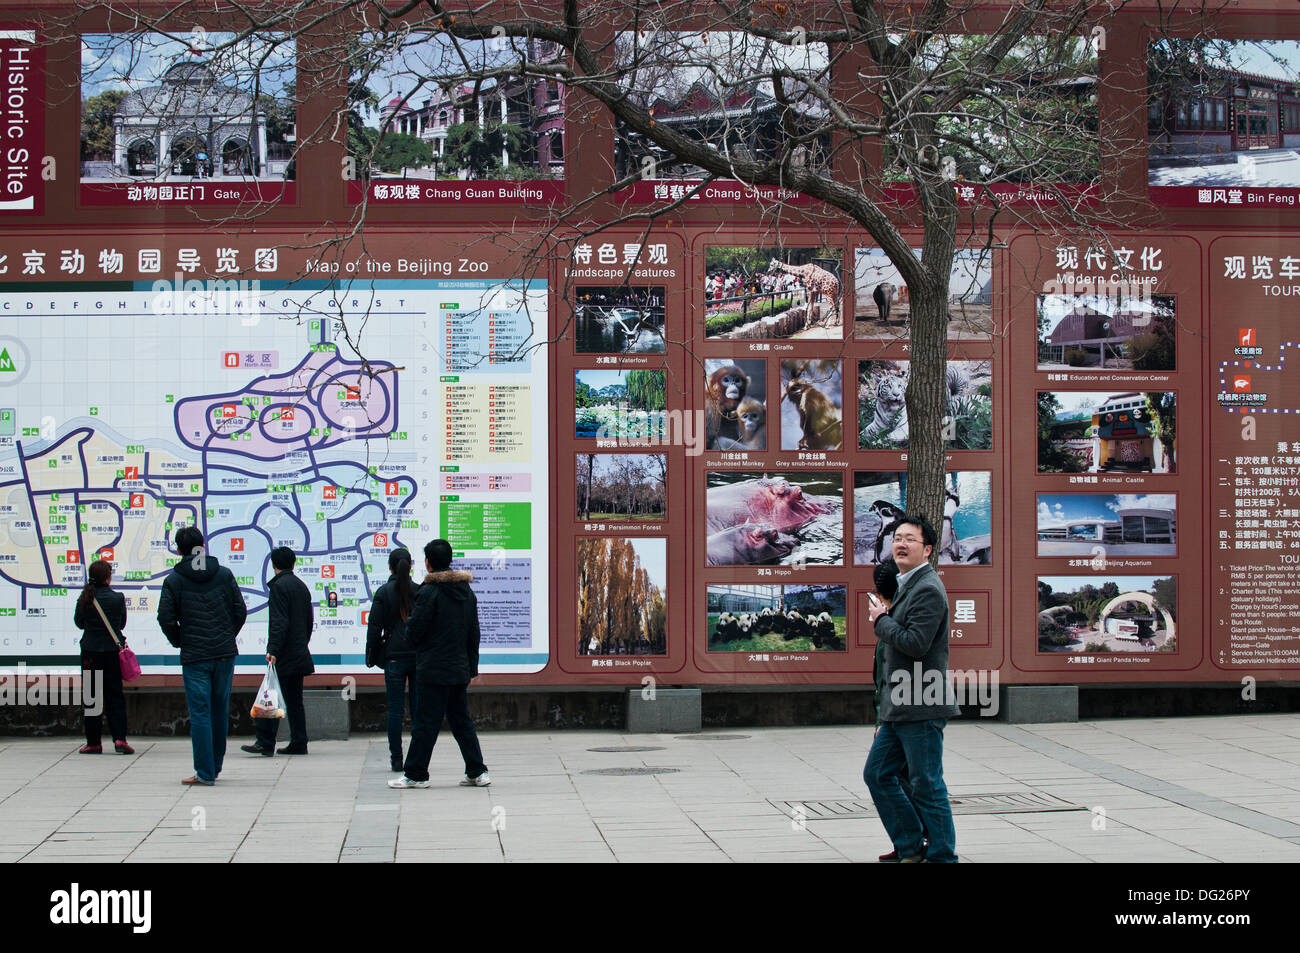 Map China City Stock Photos Images Alamy Printed Circuit Board Gua Large In Beijing Zoo Xicheng District Image